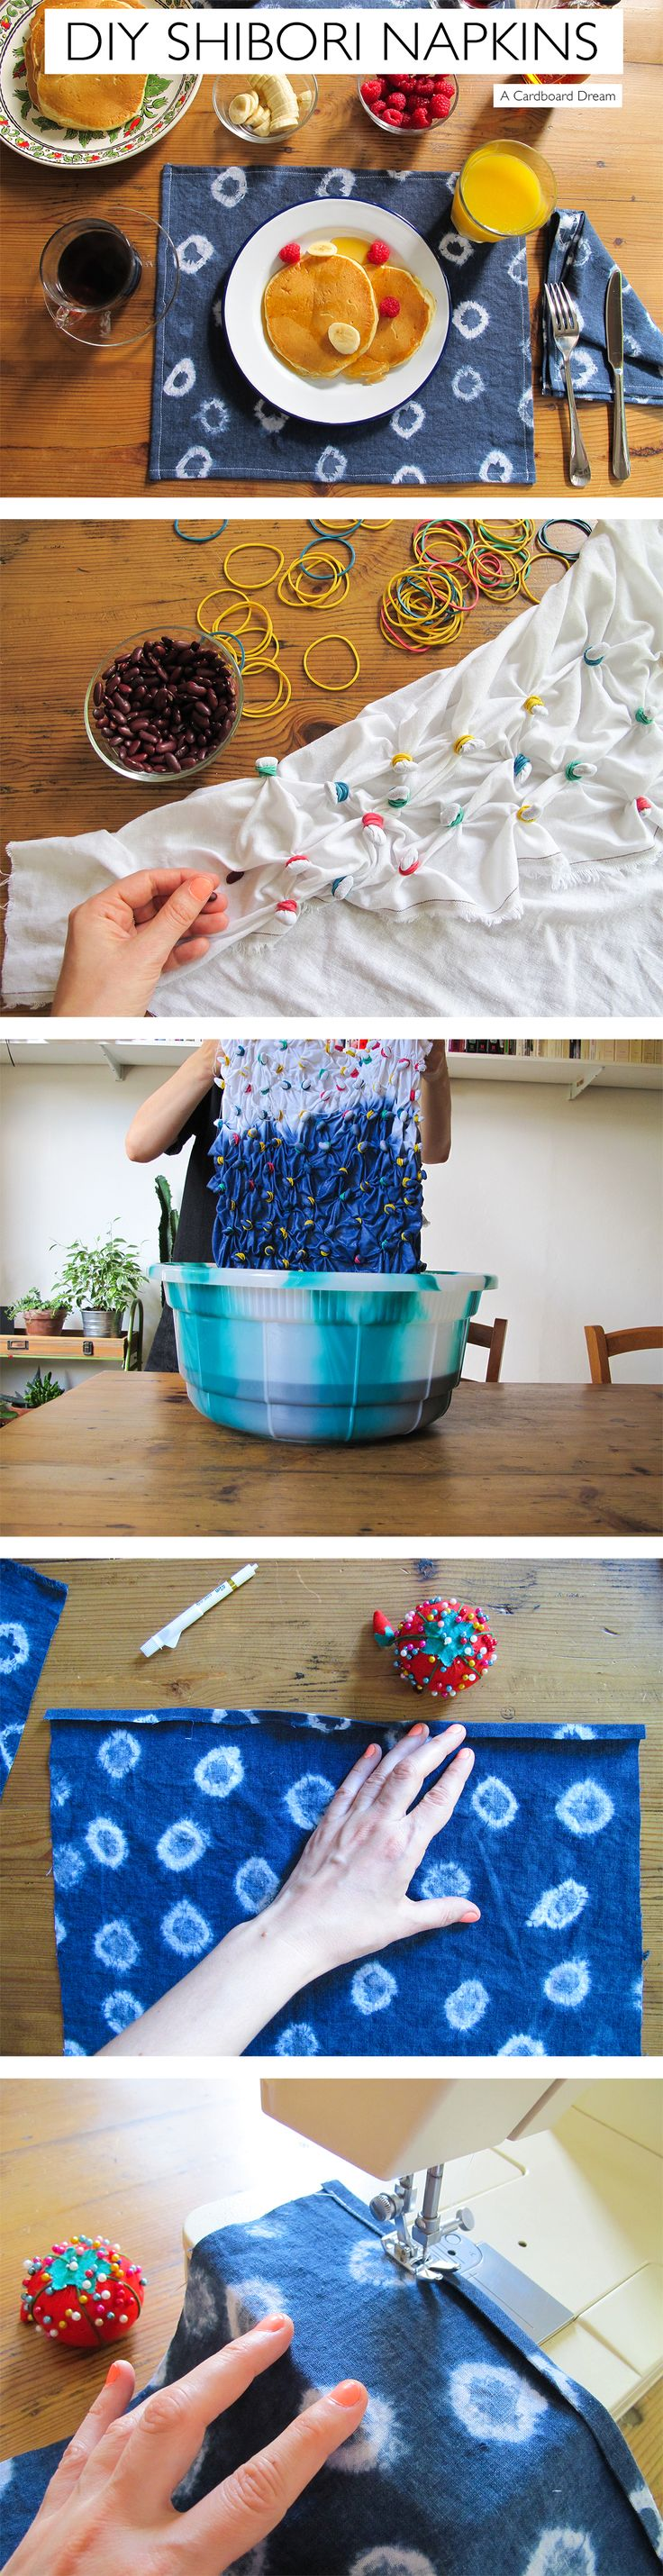 DIY // HOW TO make napkins using shibori technique // Very easy // Full tutorial on A Cardboard Dream blog